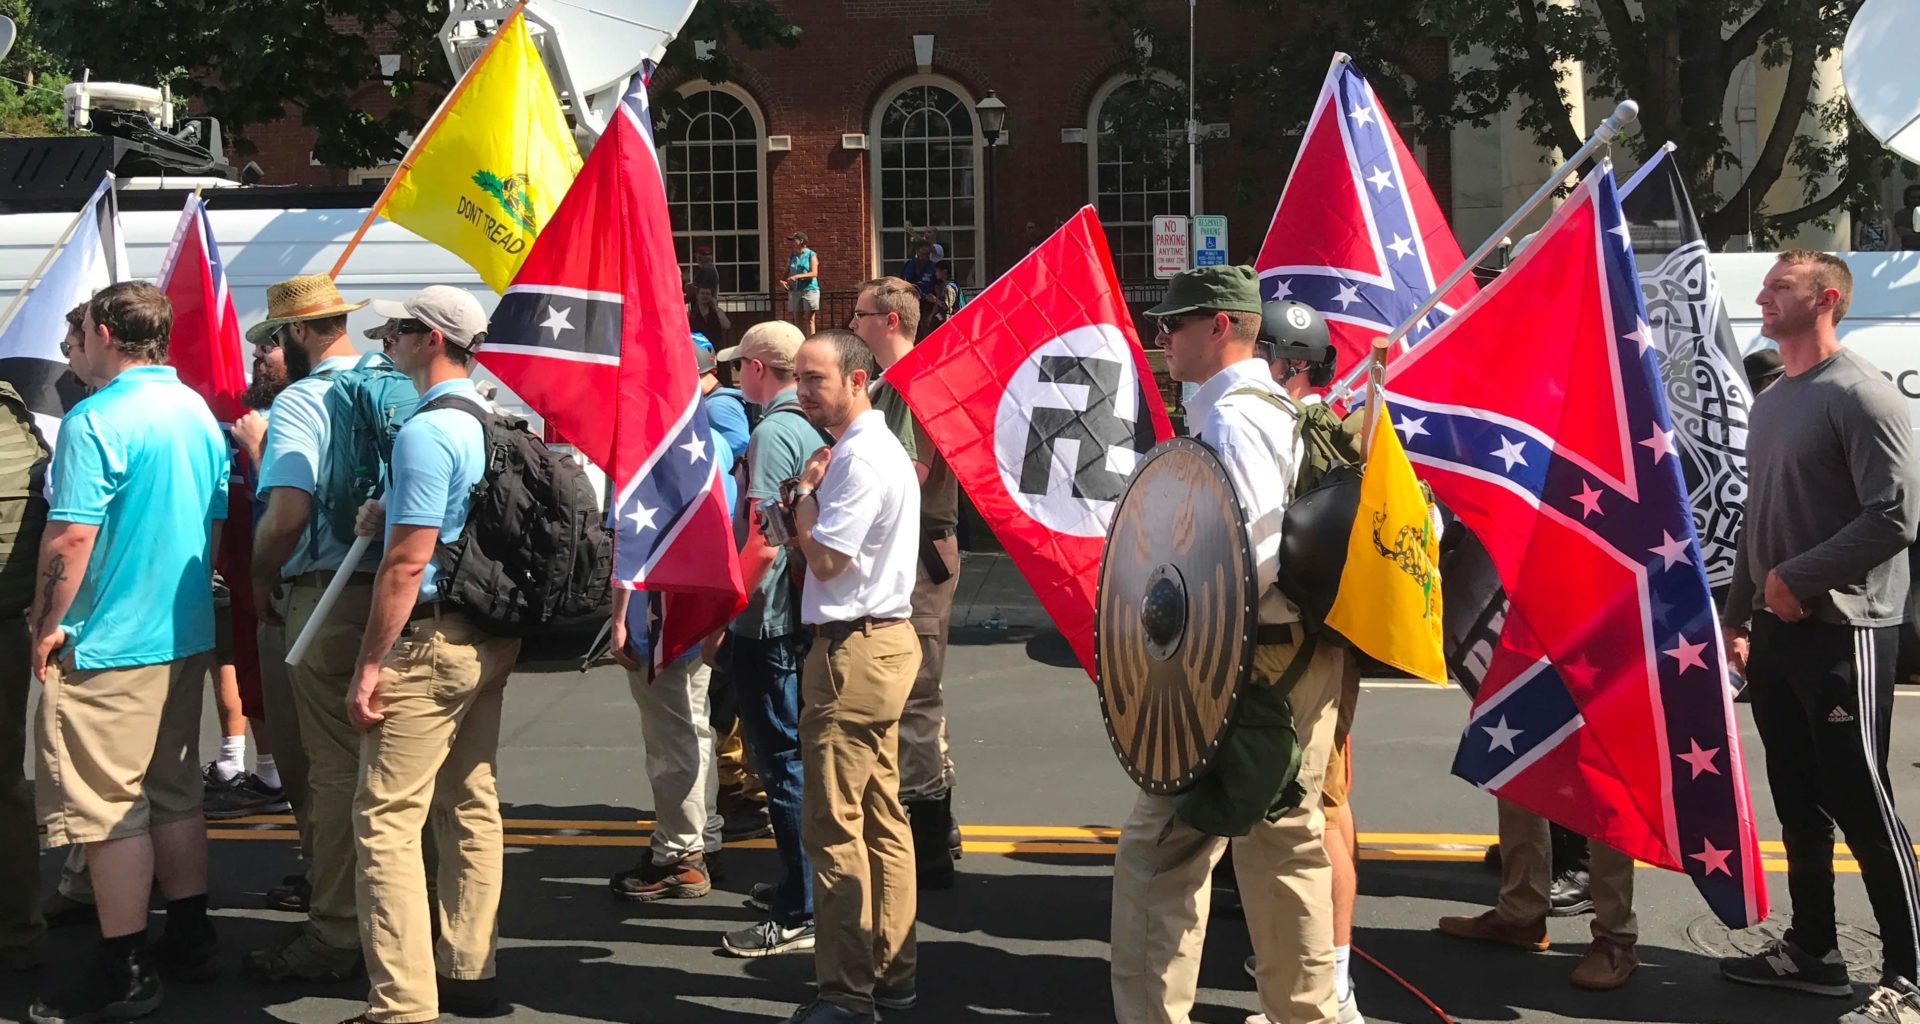 After Charleston Murders, People in Fear Over Discovery of Hate Group Flyers (VIDEO)